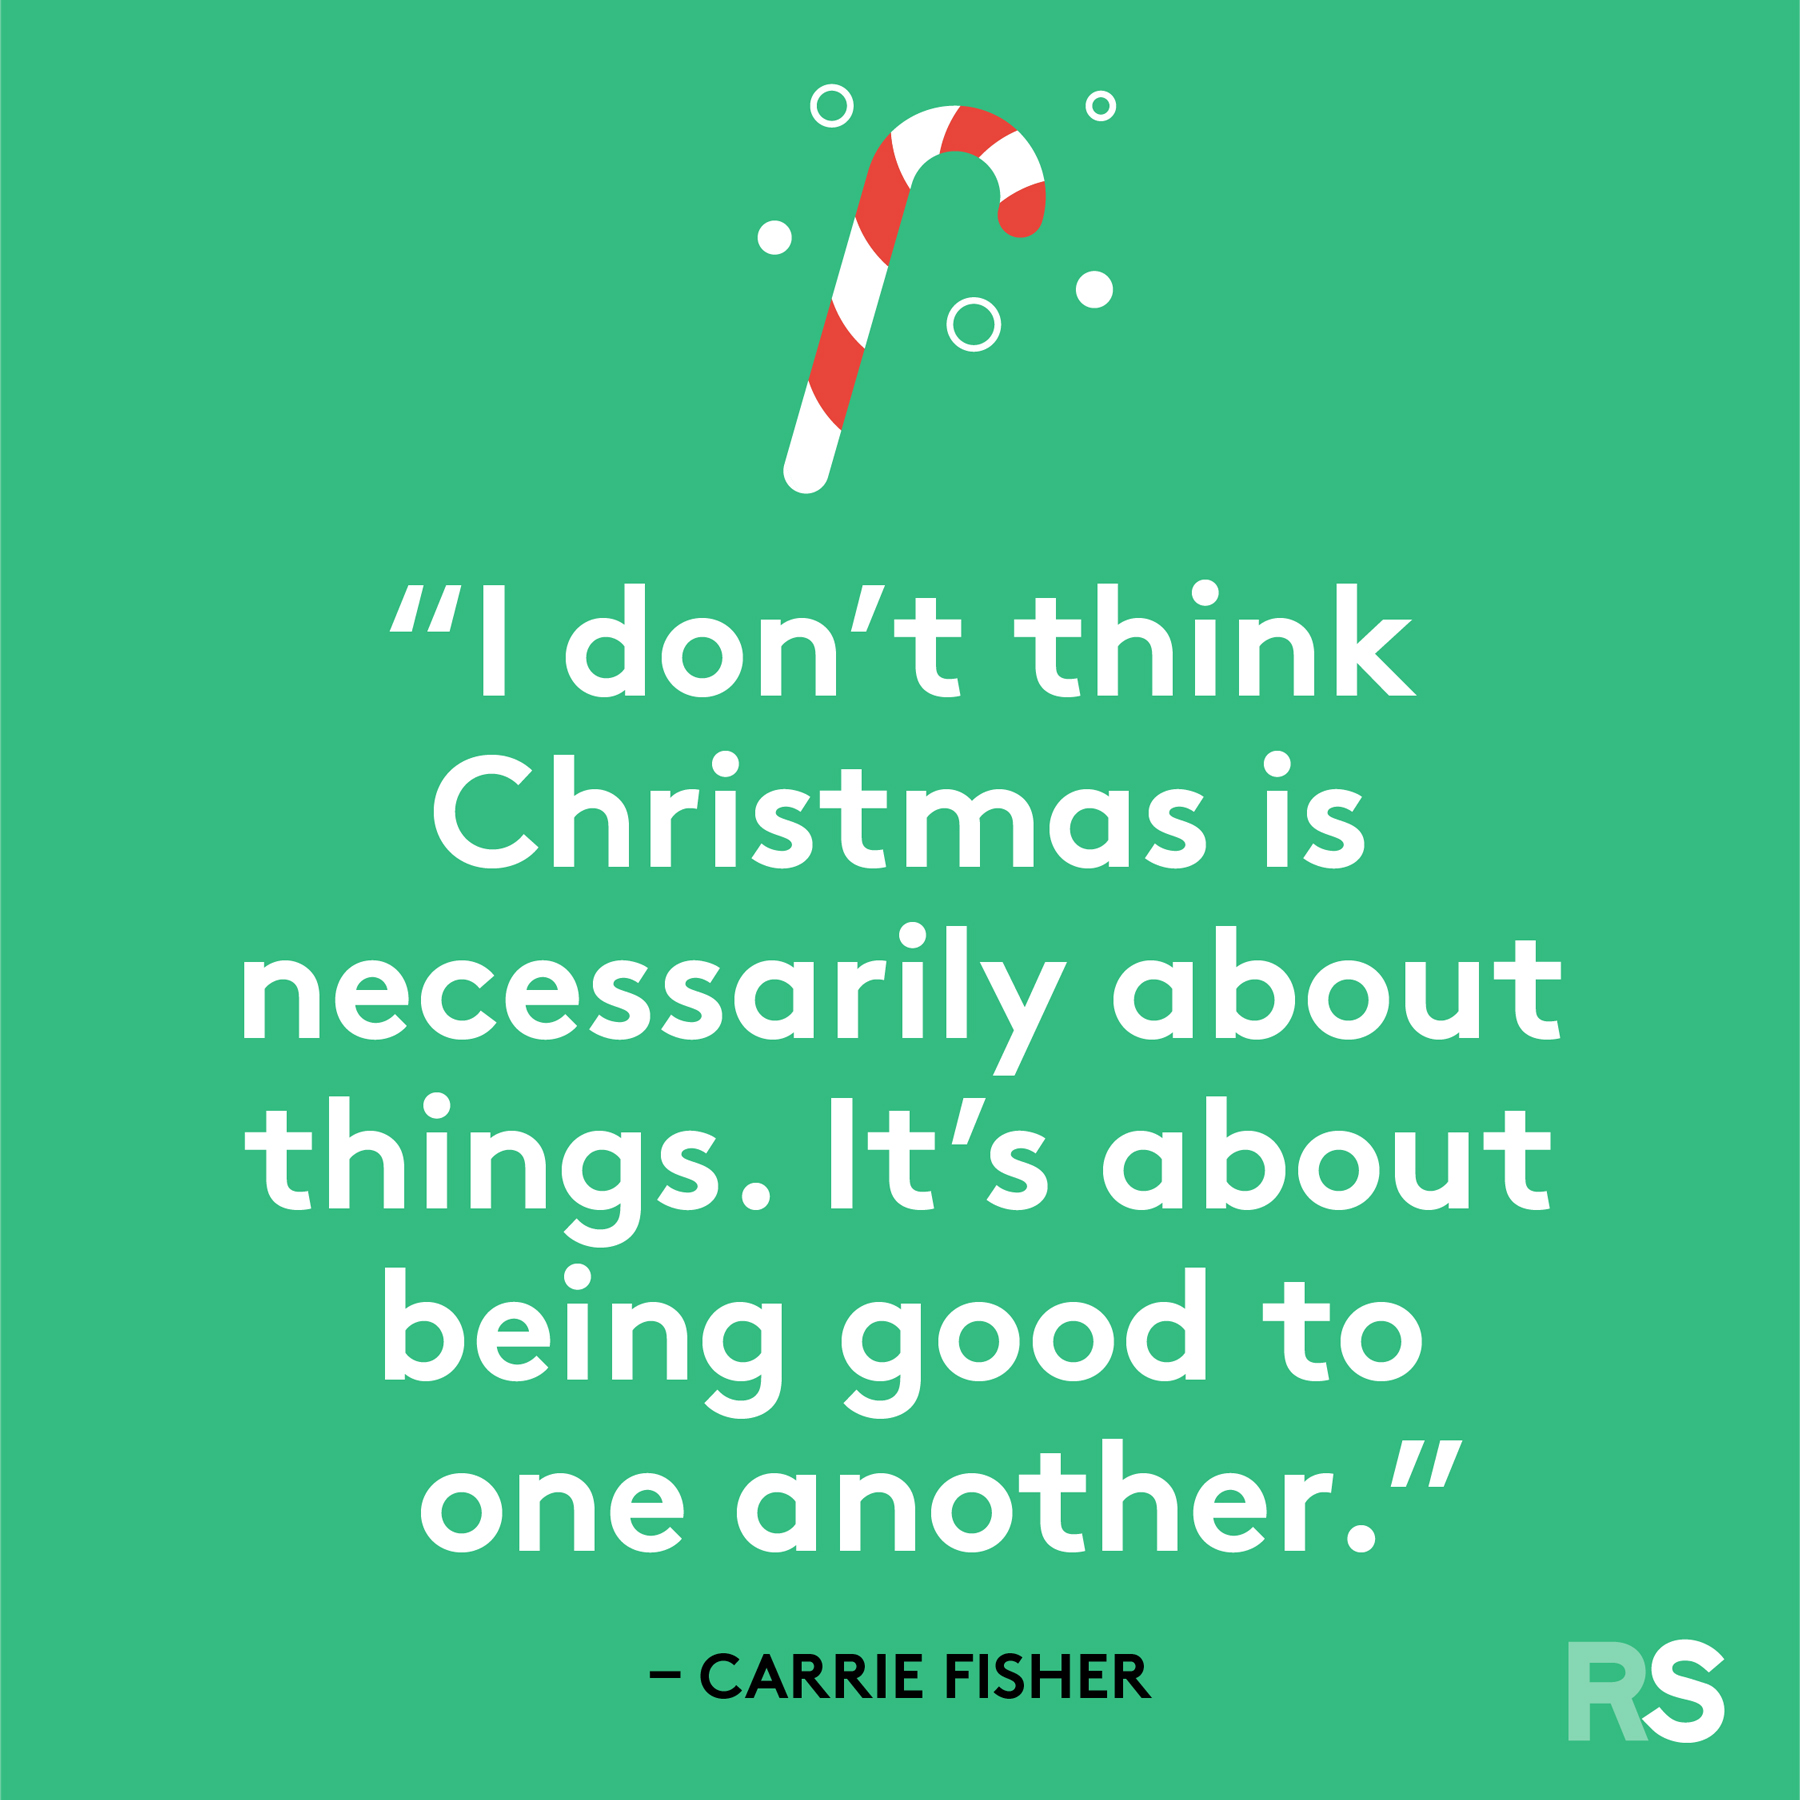 Best Christmas quotes - Carrie Fisher